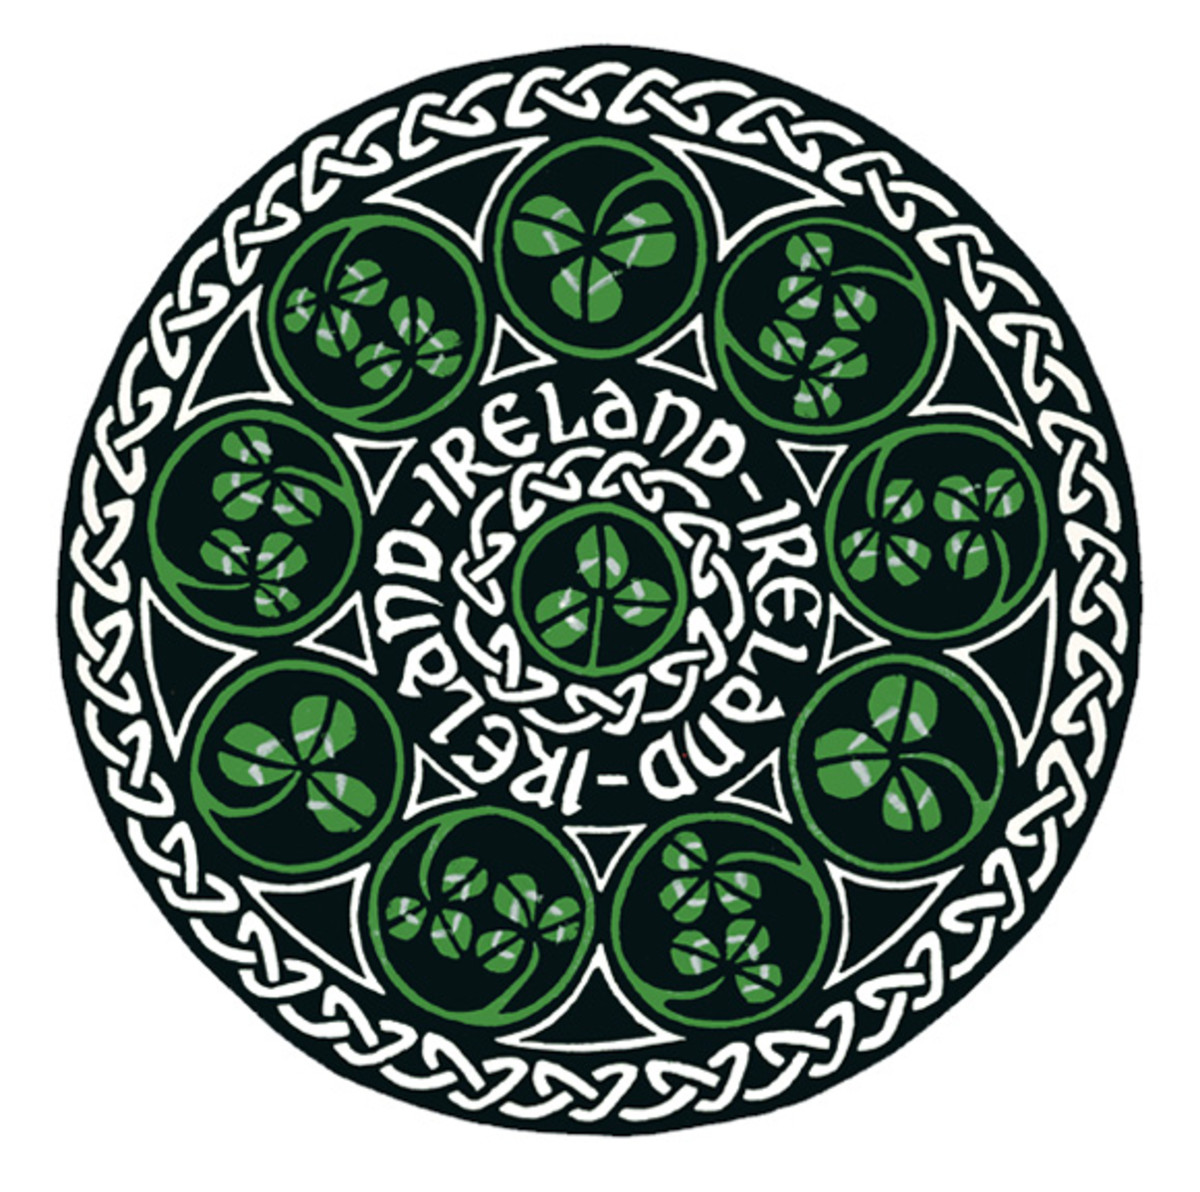 Celtic knot work circle based on the three leaf clover, the national symbol of Ireland.